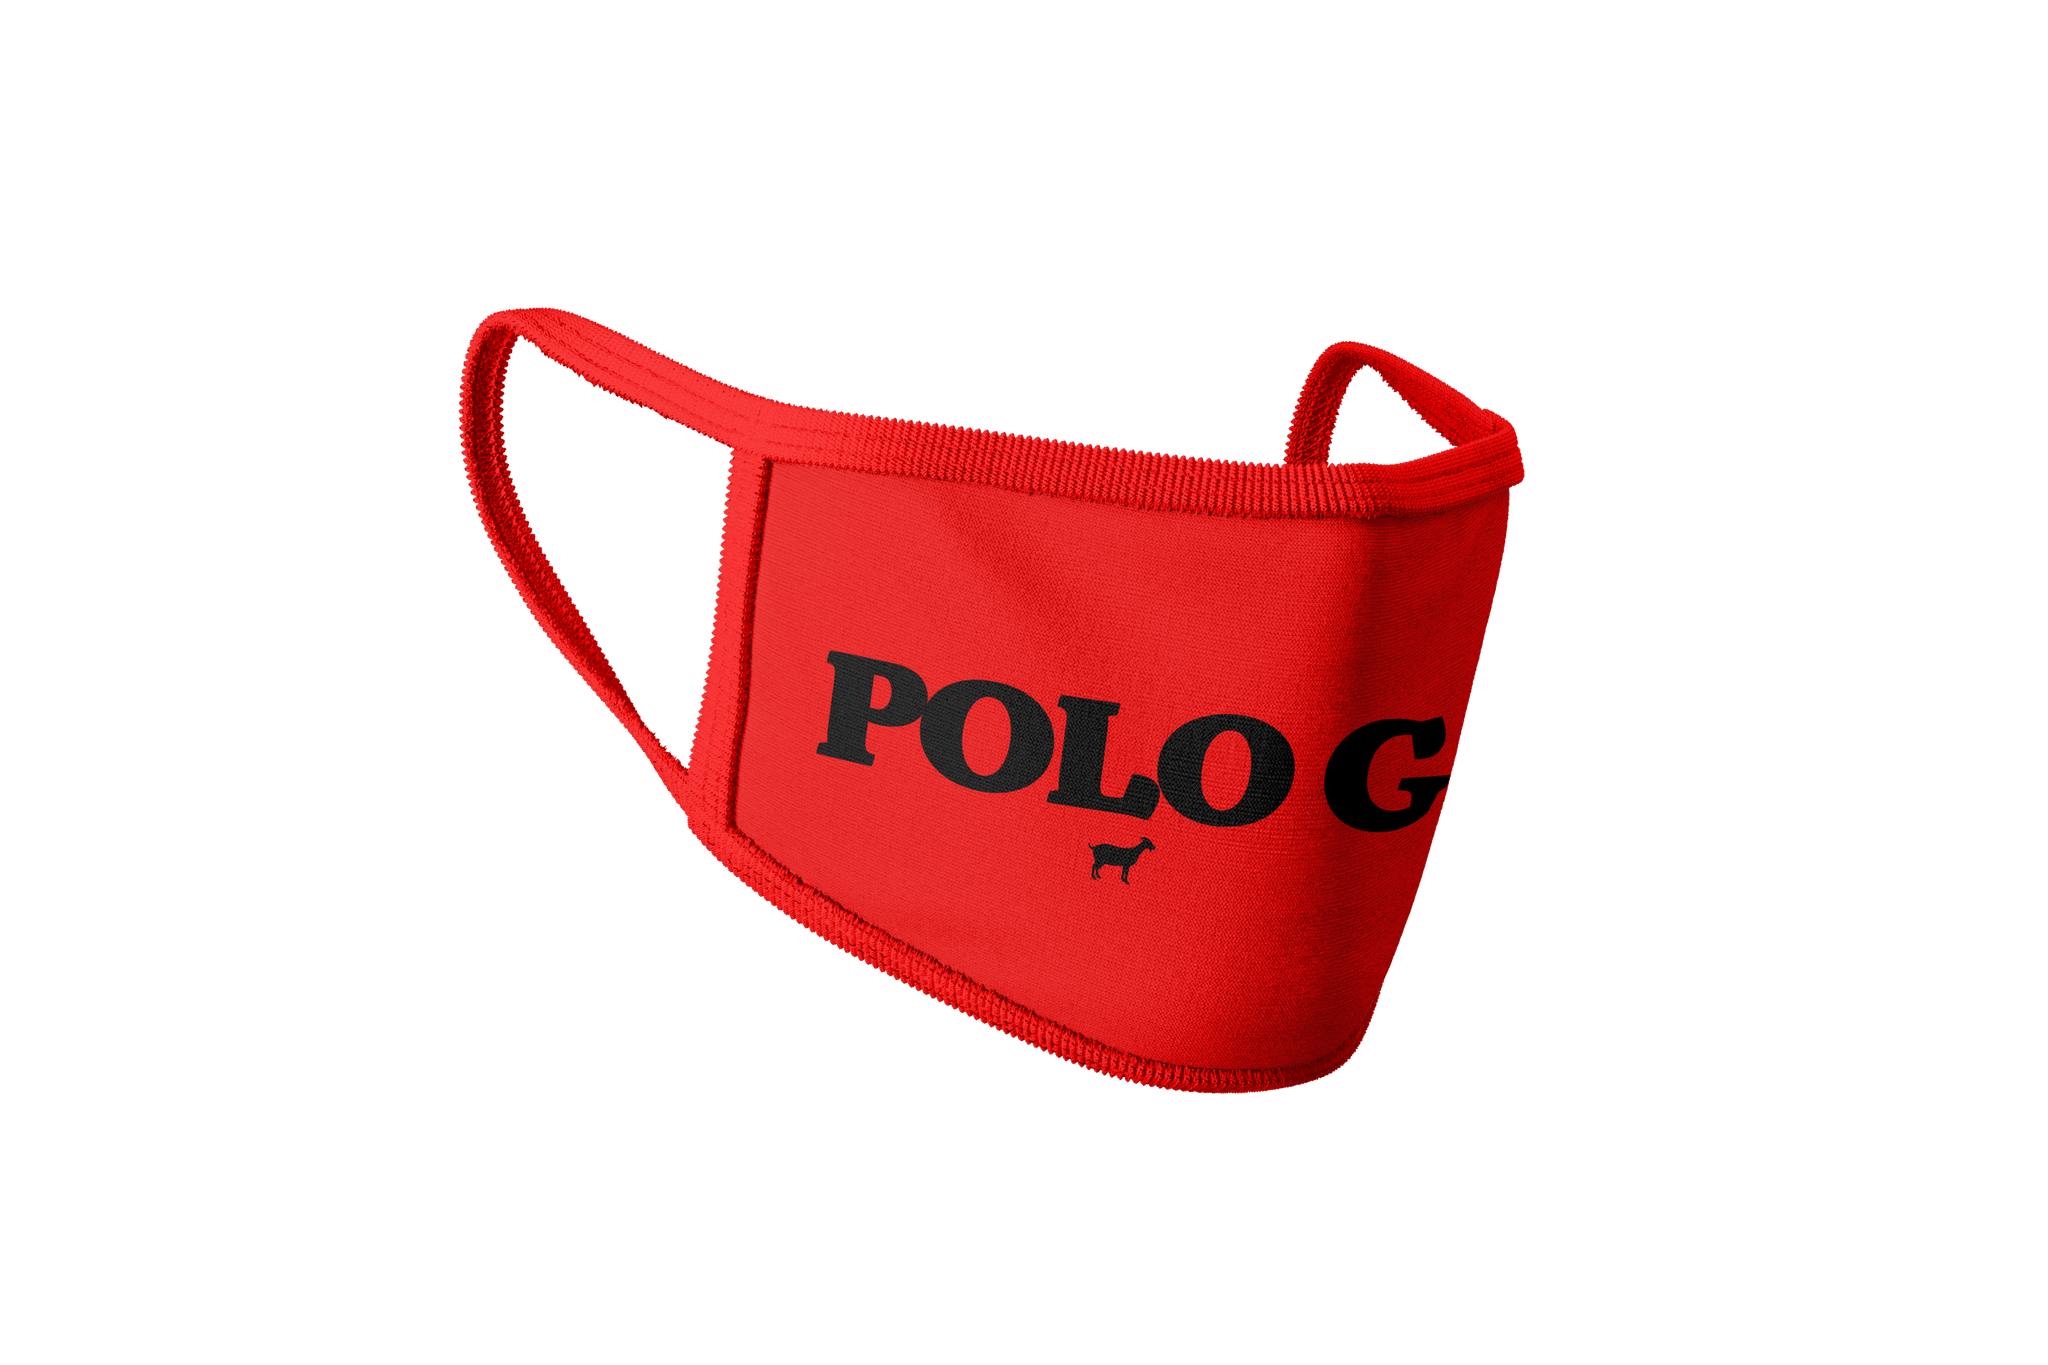 Polo G Face Mask